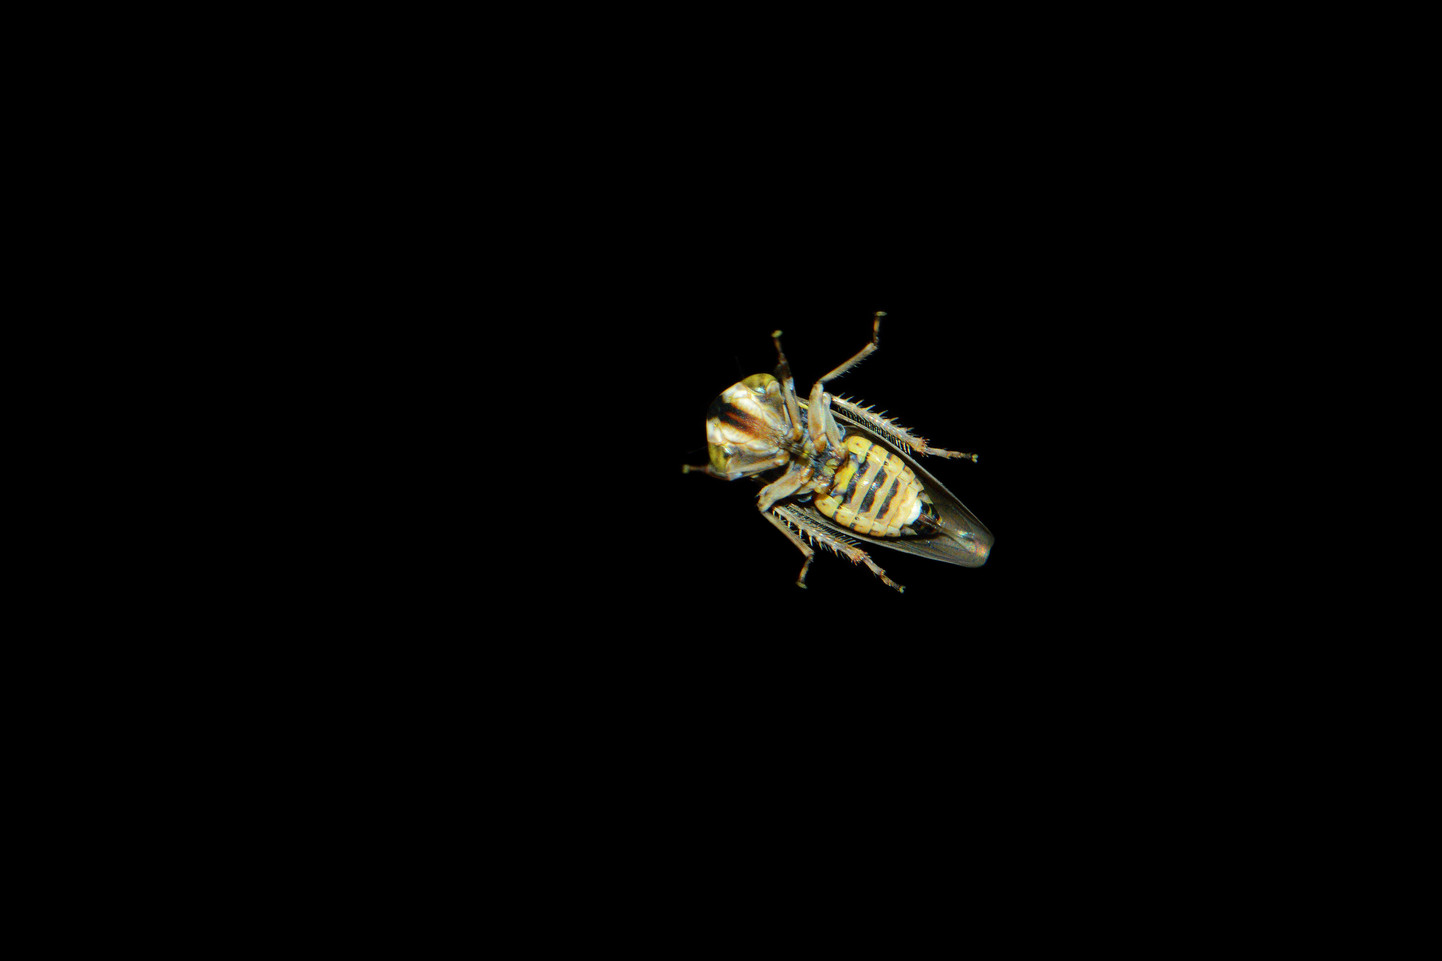 nuit insecte photography night darkness entomology art sciart